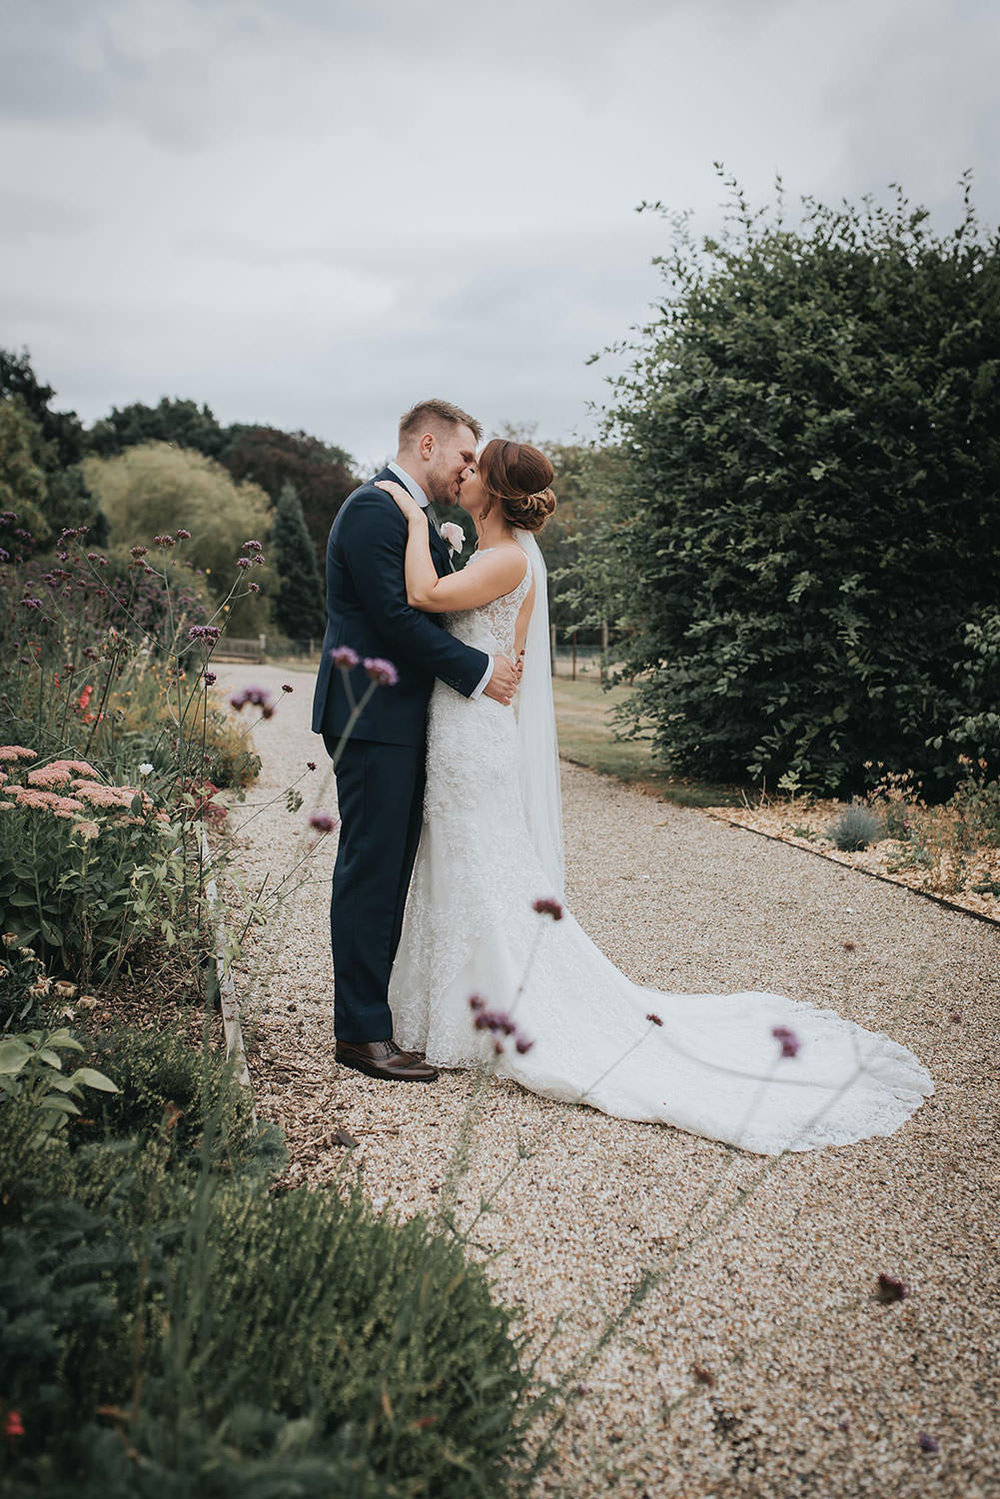 Gaynes Park Wedding Photographer | Wedding Photographer Essex